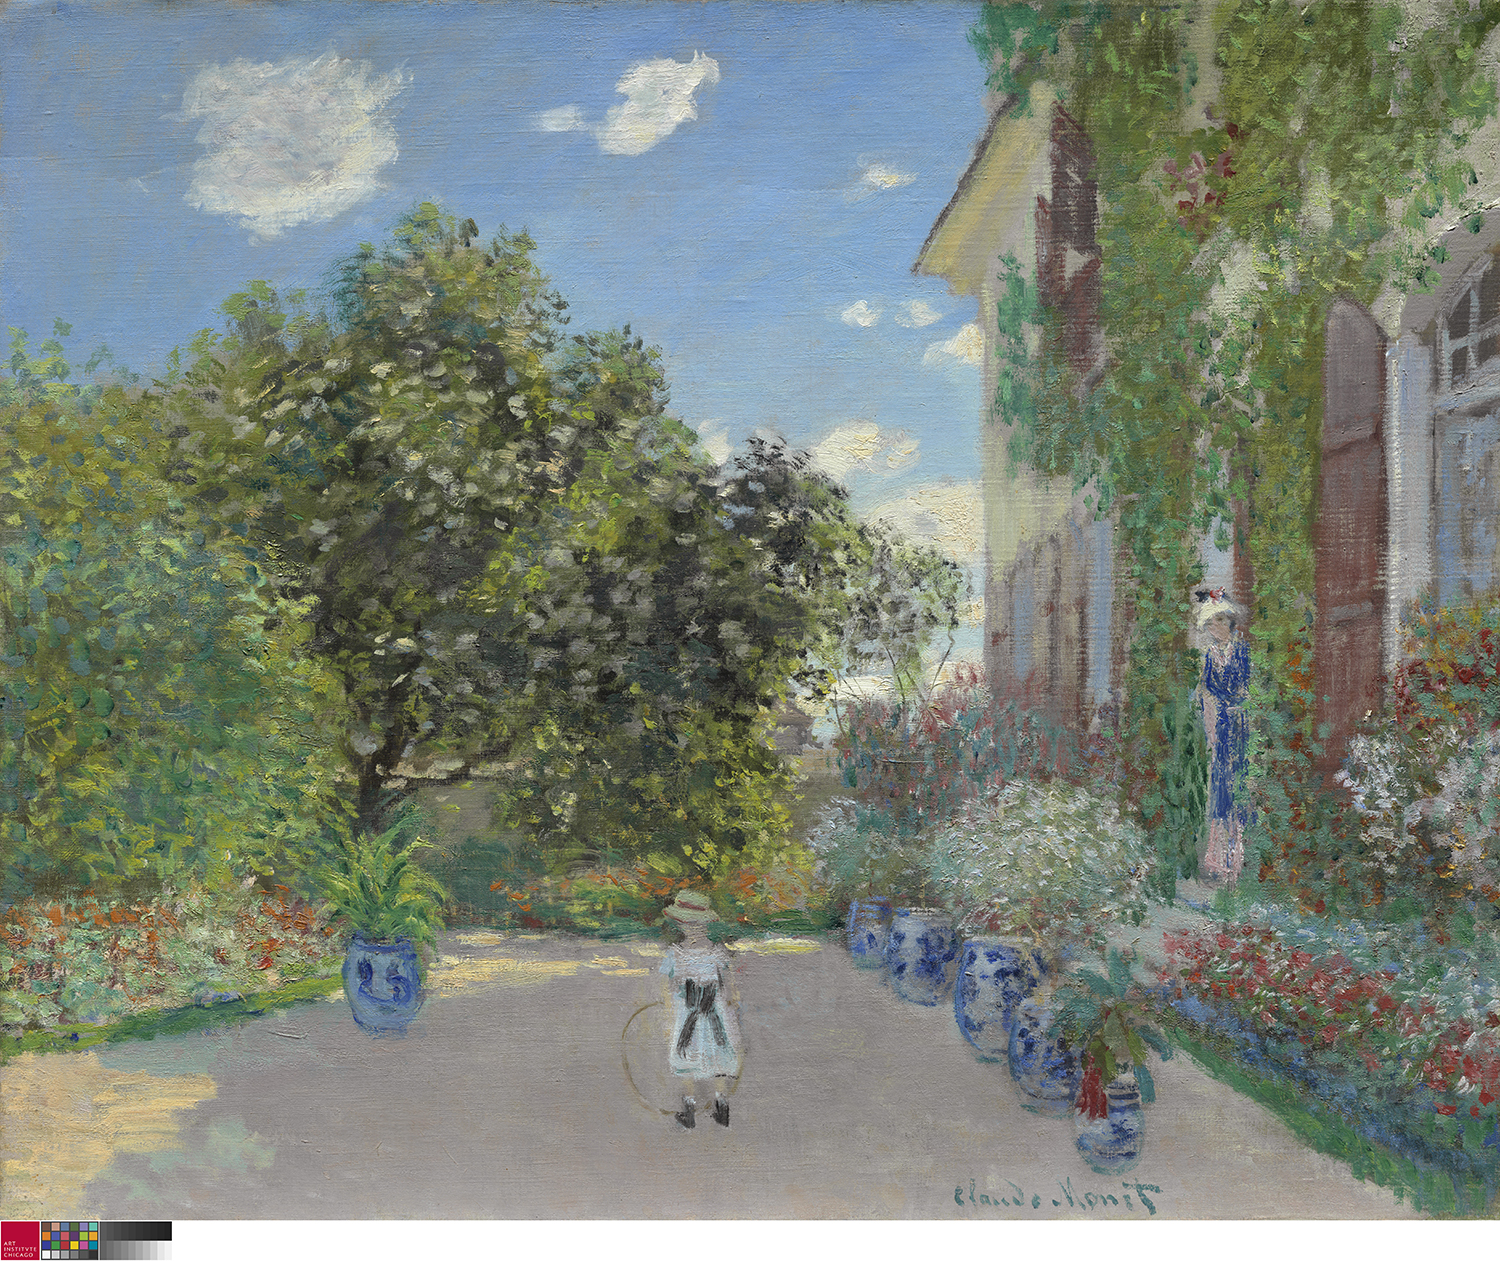 https://www.dia.org/sites/default/files/the_artists_house_at_argenteuil_1873_claude_monet.jpg